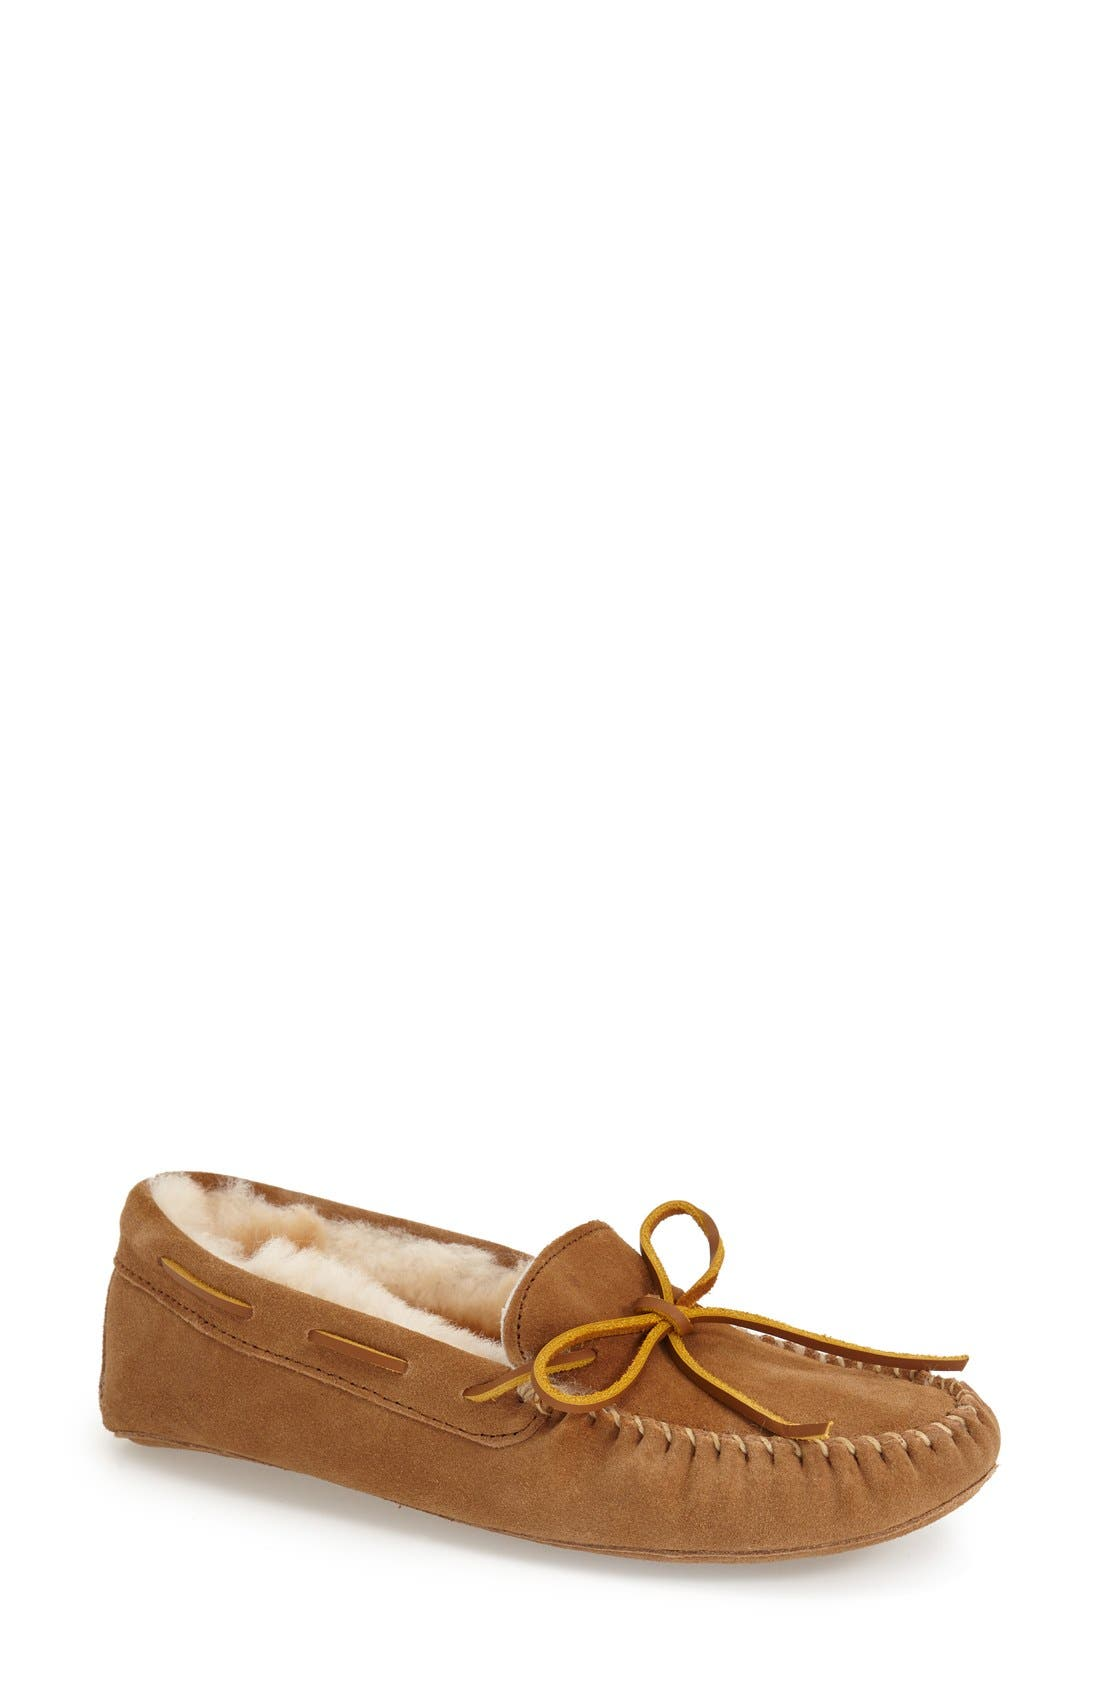 Sheepskin Moccasin Slipper by Minnetonka